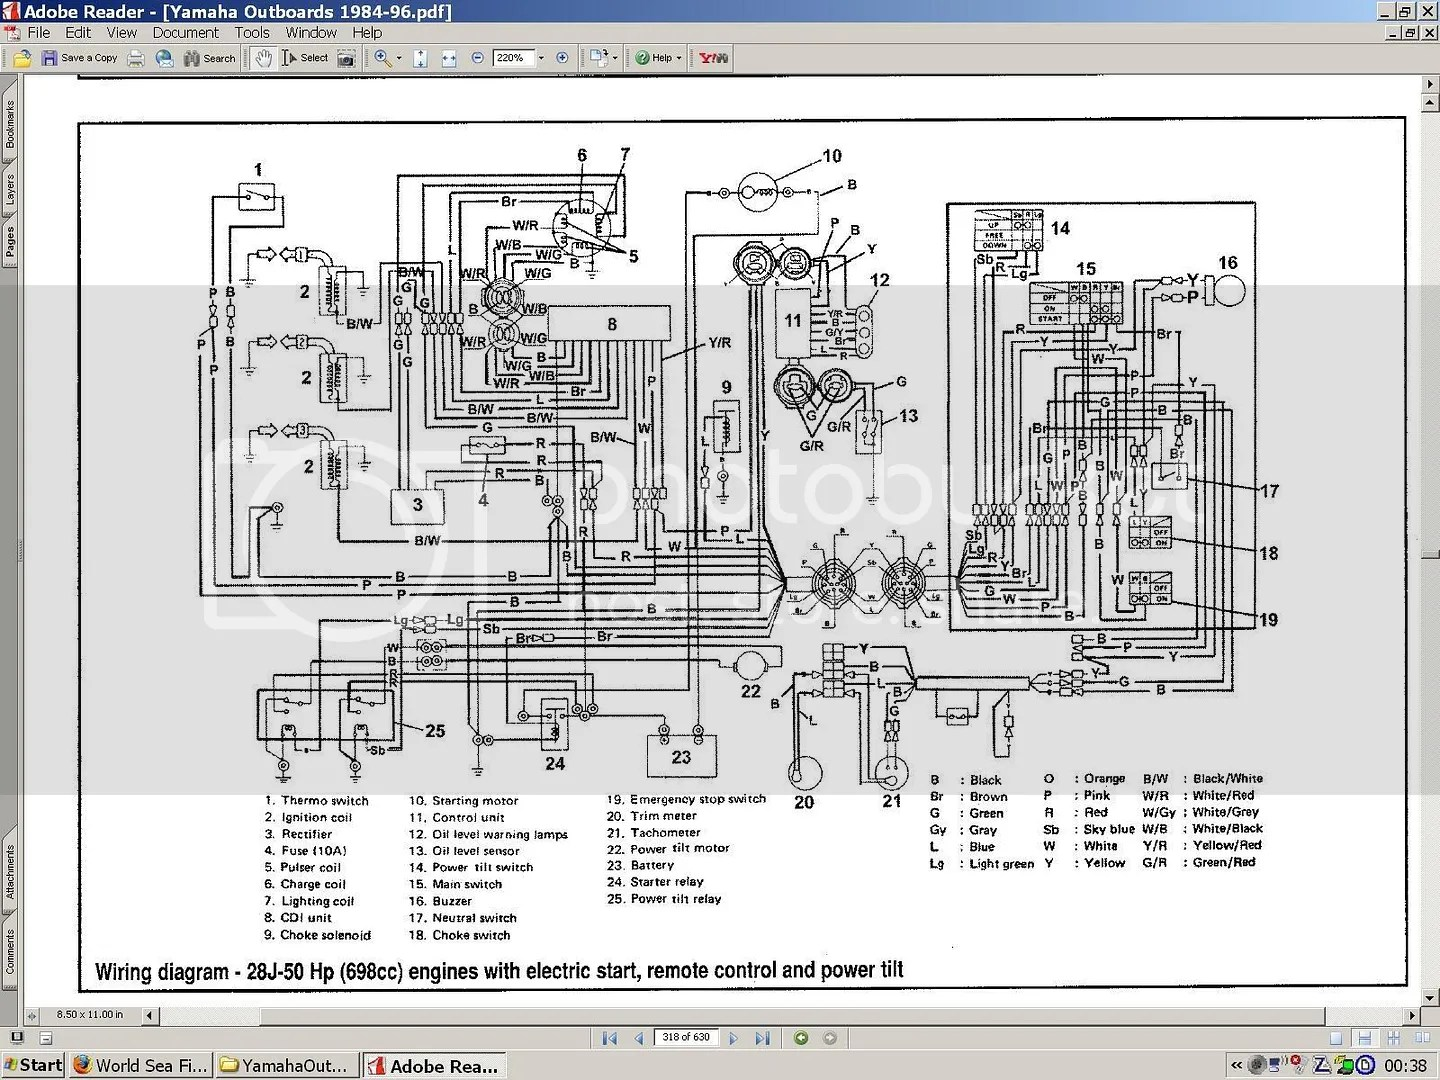 yamaha 703 remote control wiring diagram wind turbines manual for ribnet forums